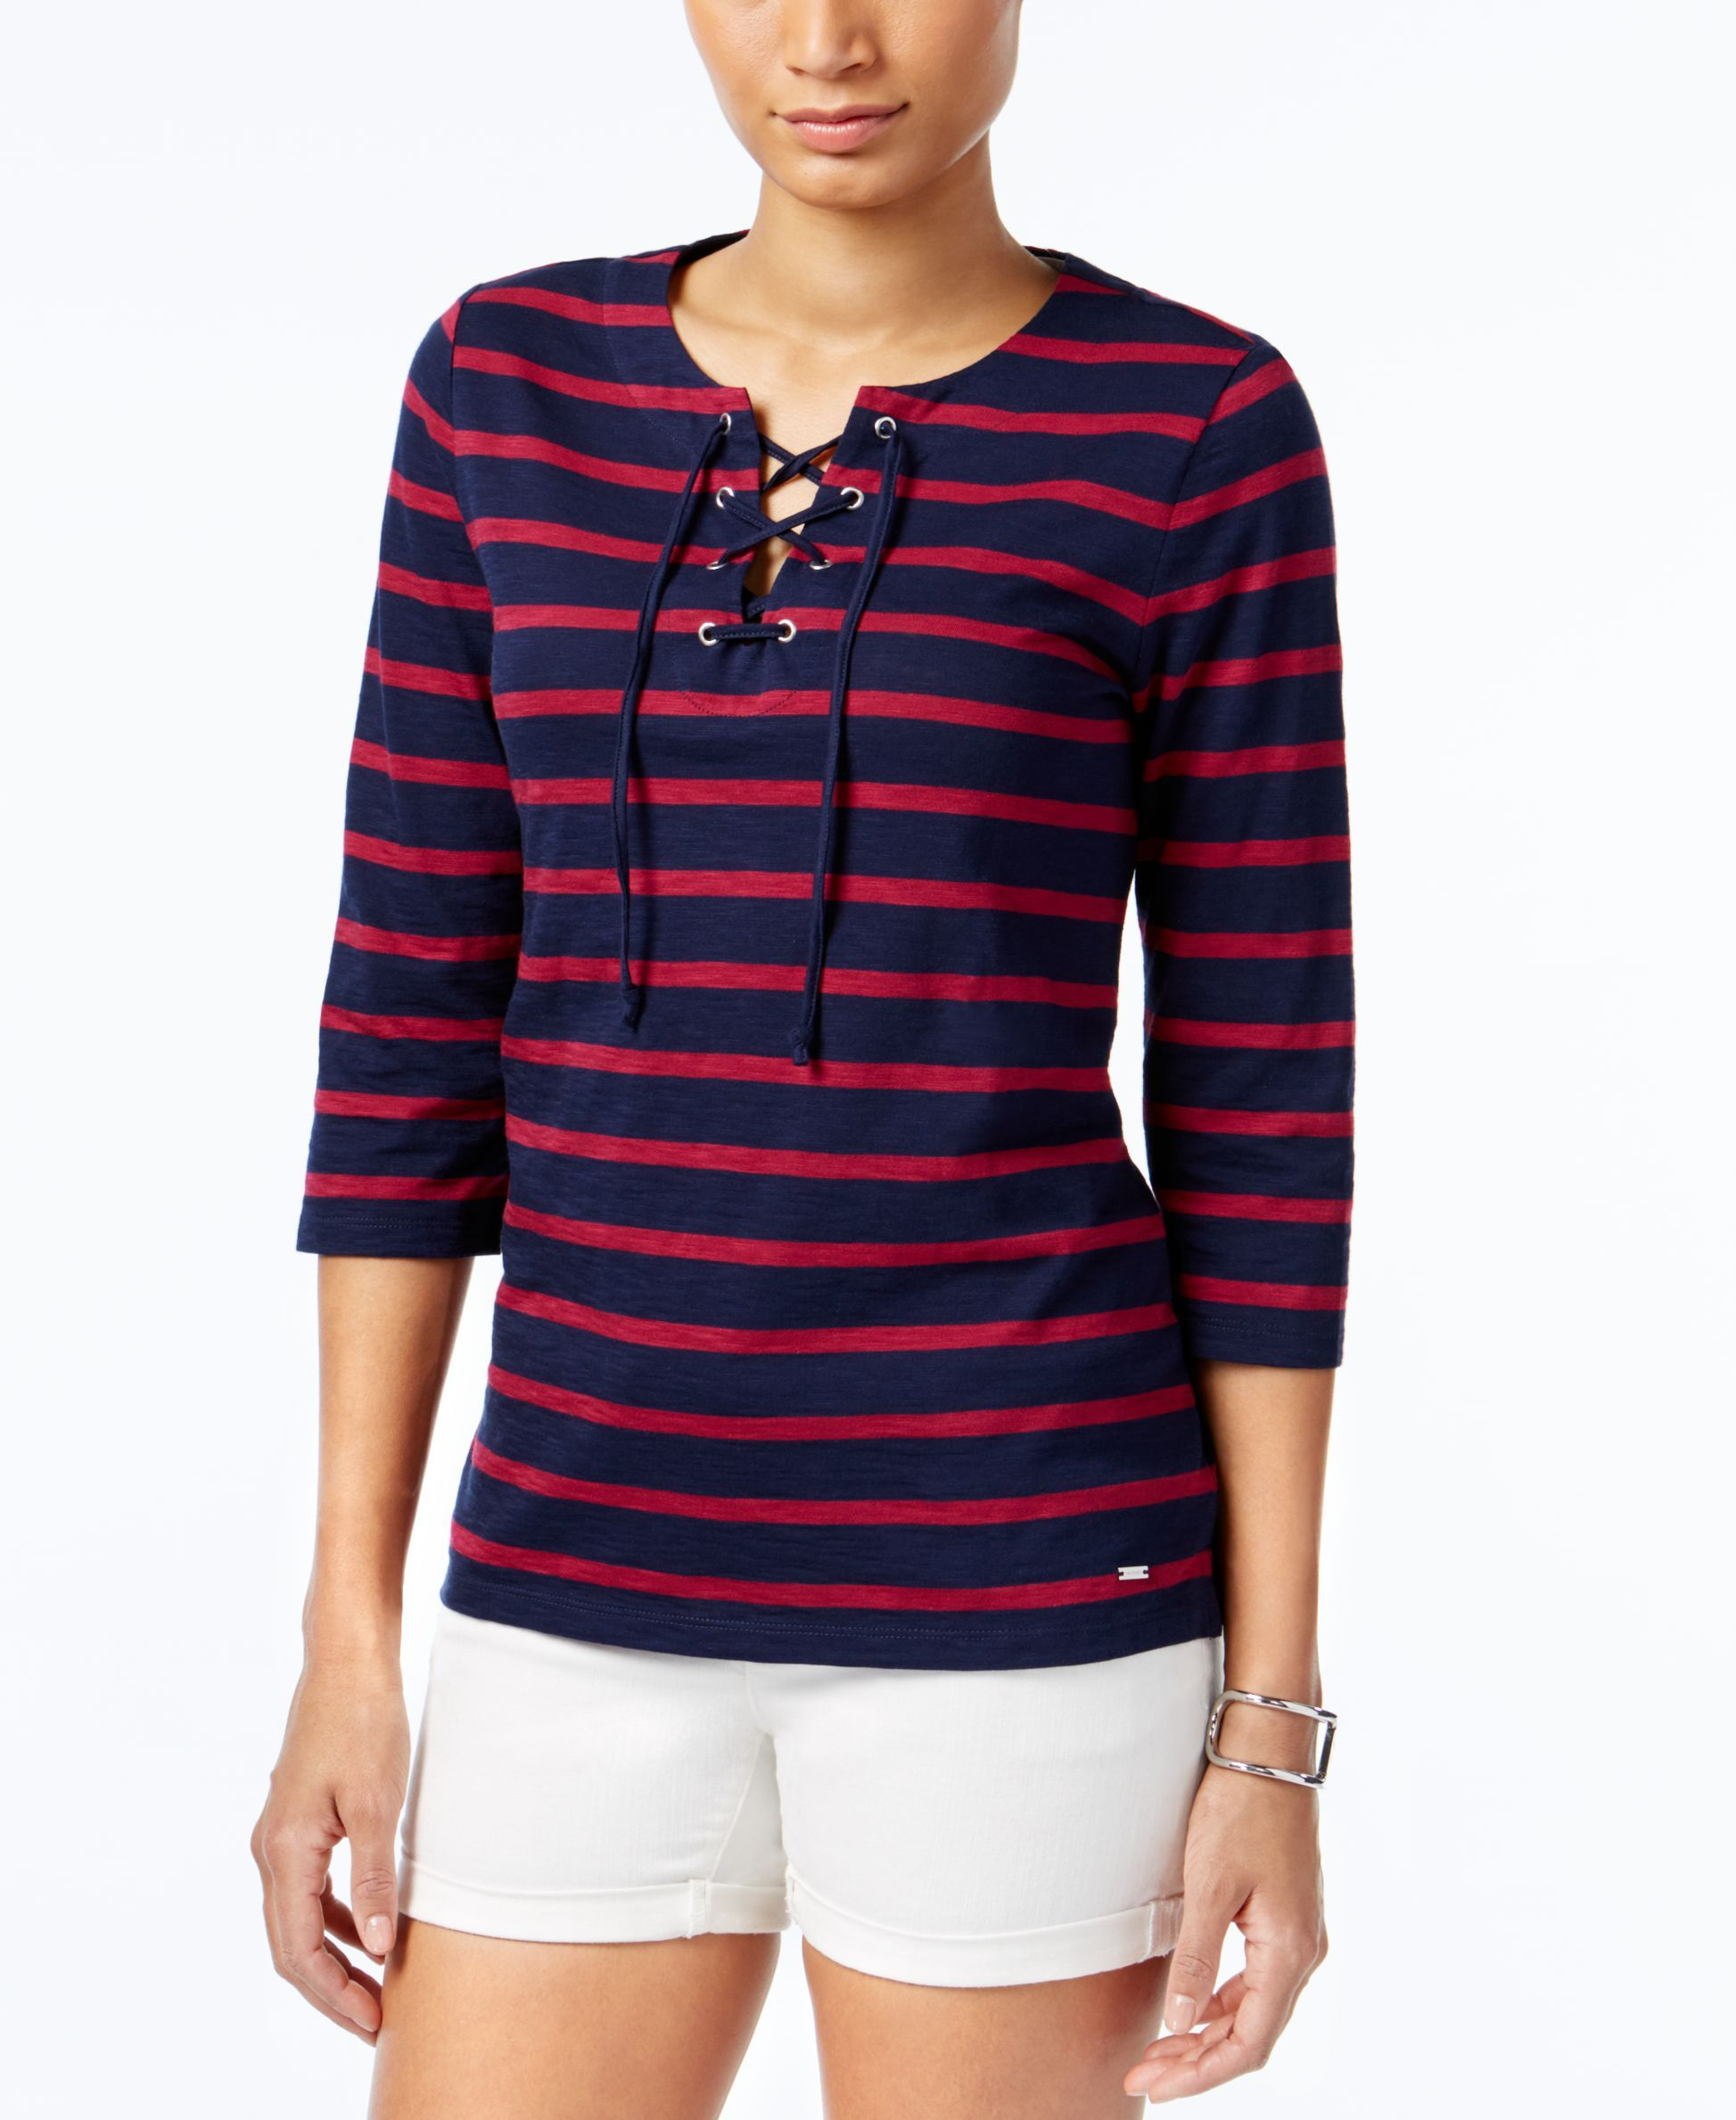 Tommy Hilfiger Loretta Striped Lace-Up Top, Created for Macy's - Tops -  Women - Macy's